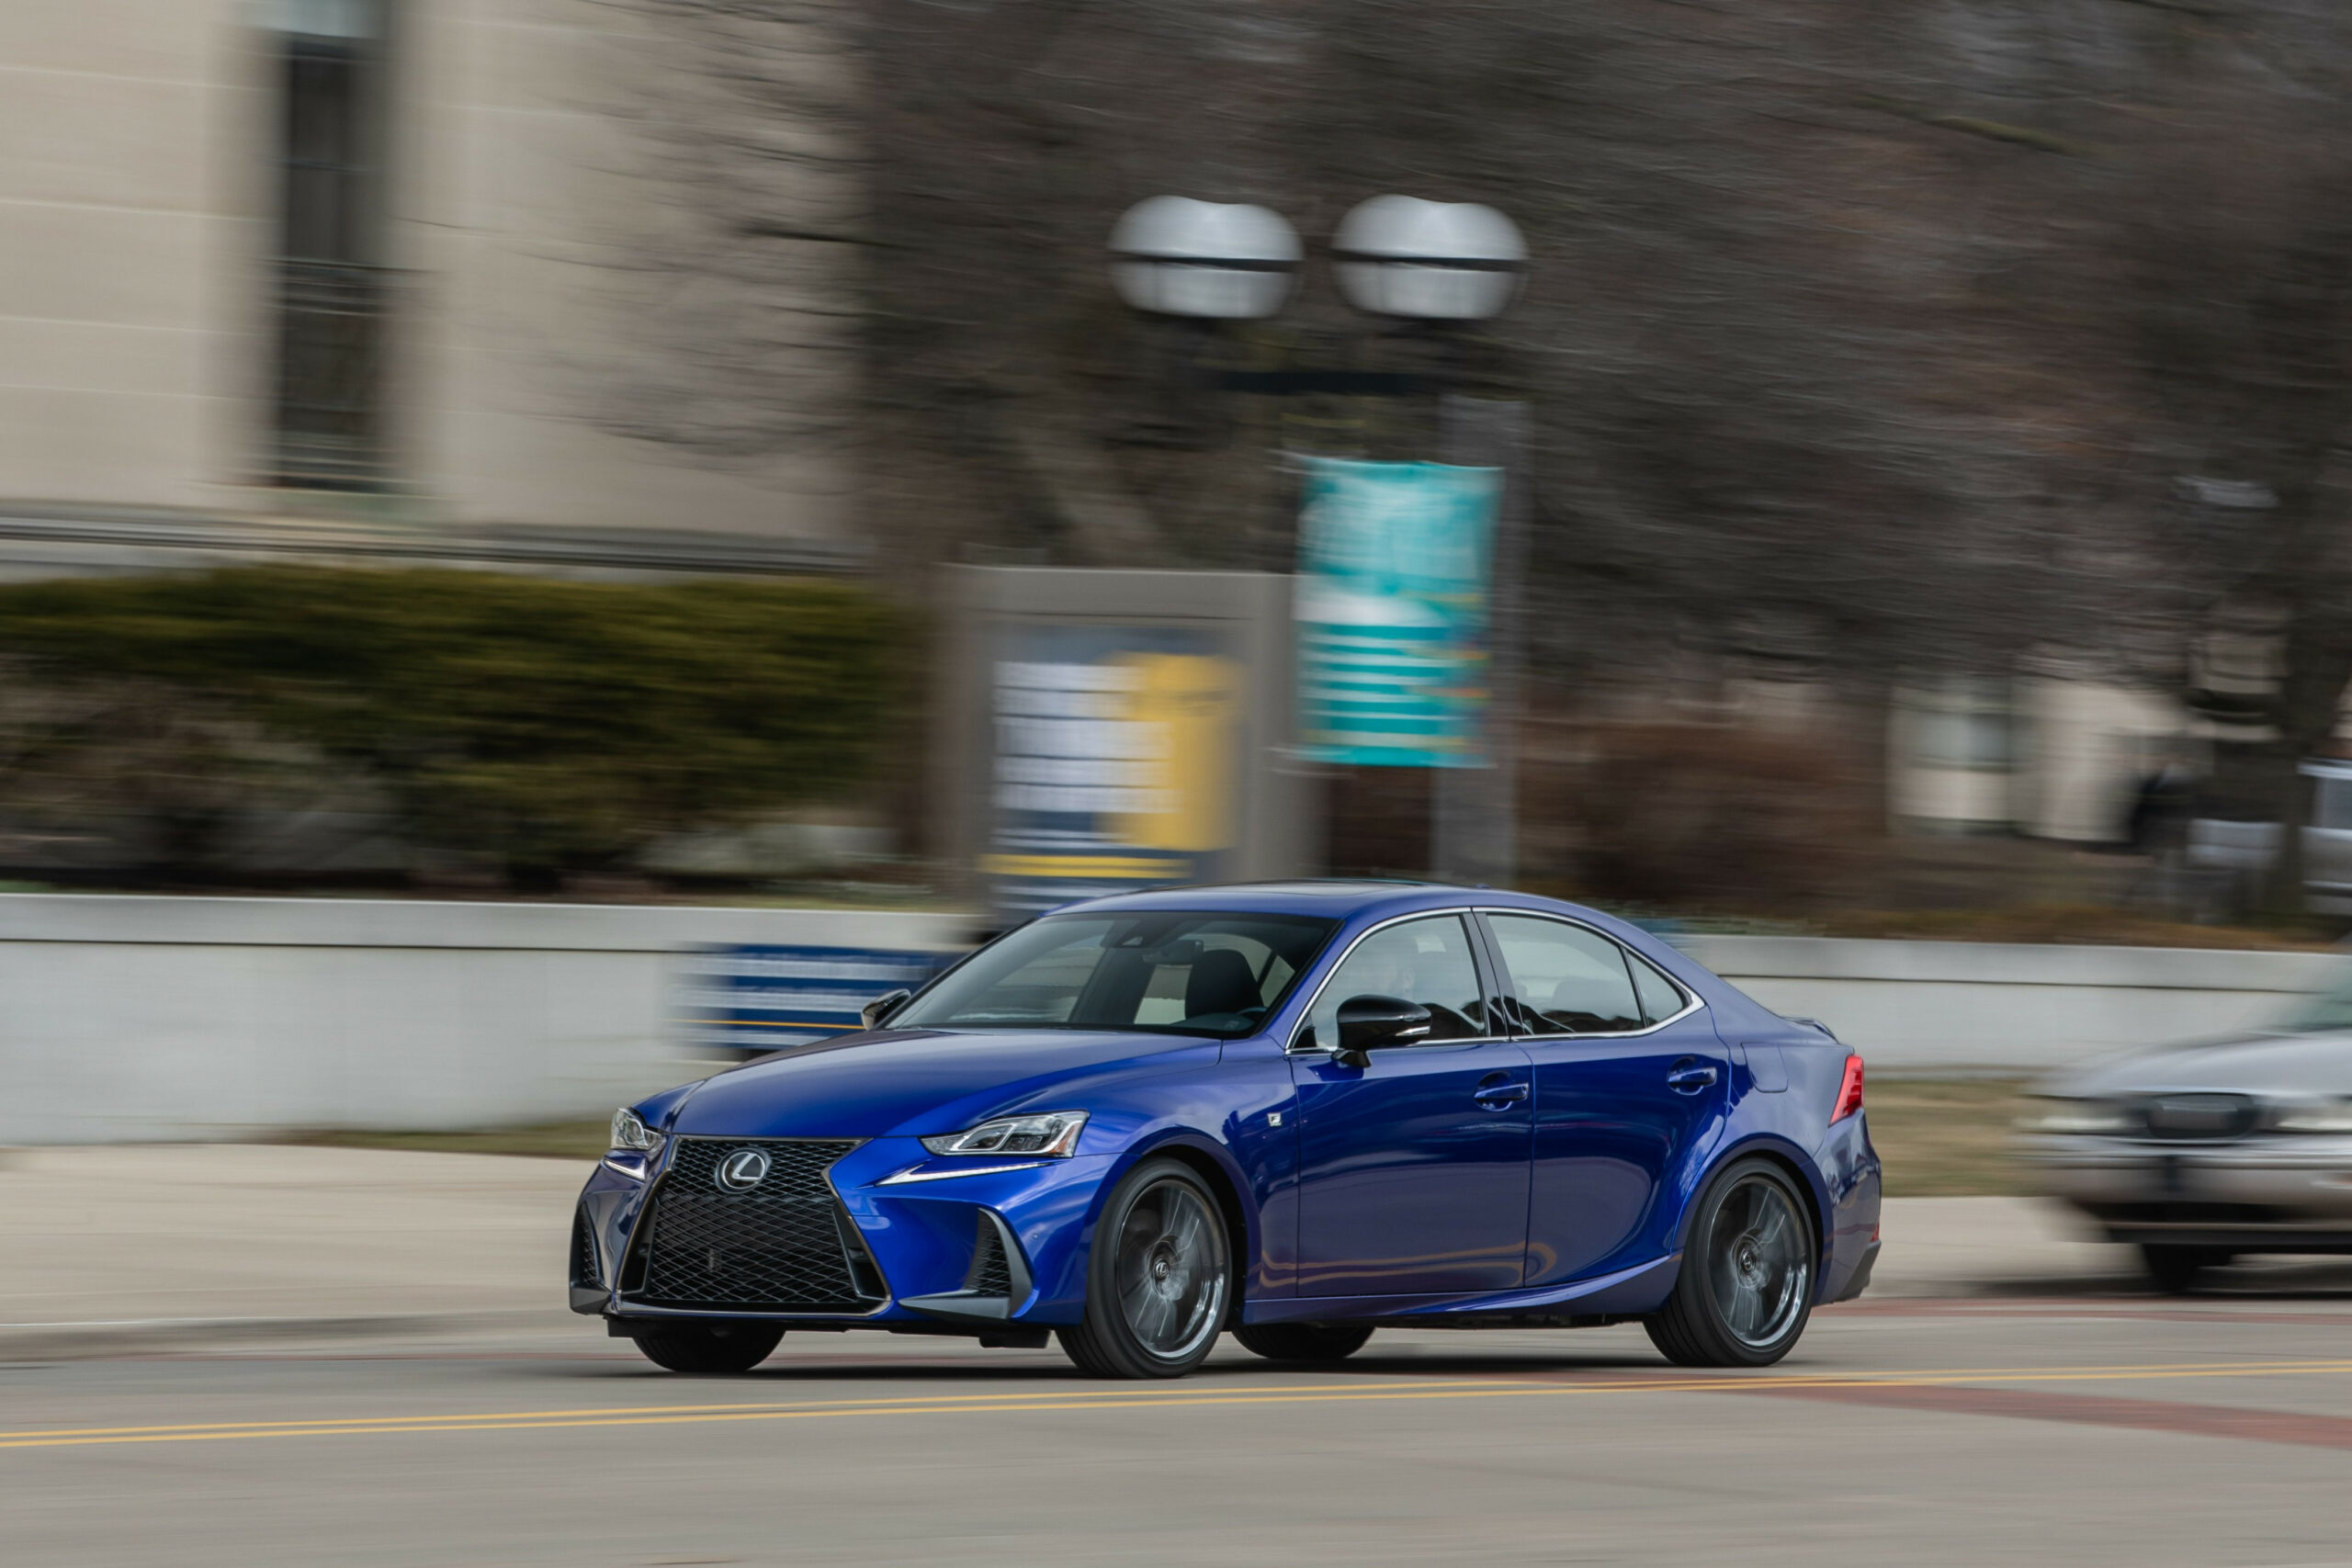 8 Lexus IS Review, Pricing, and Specs